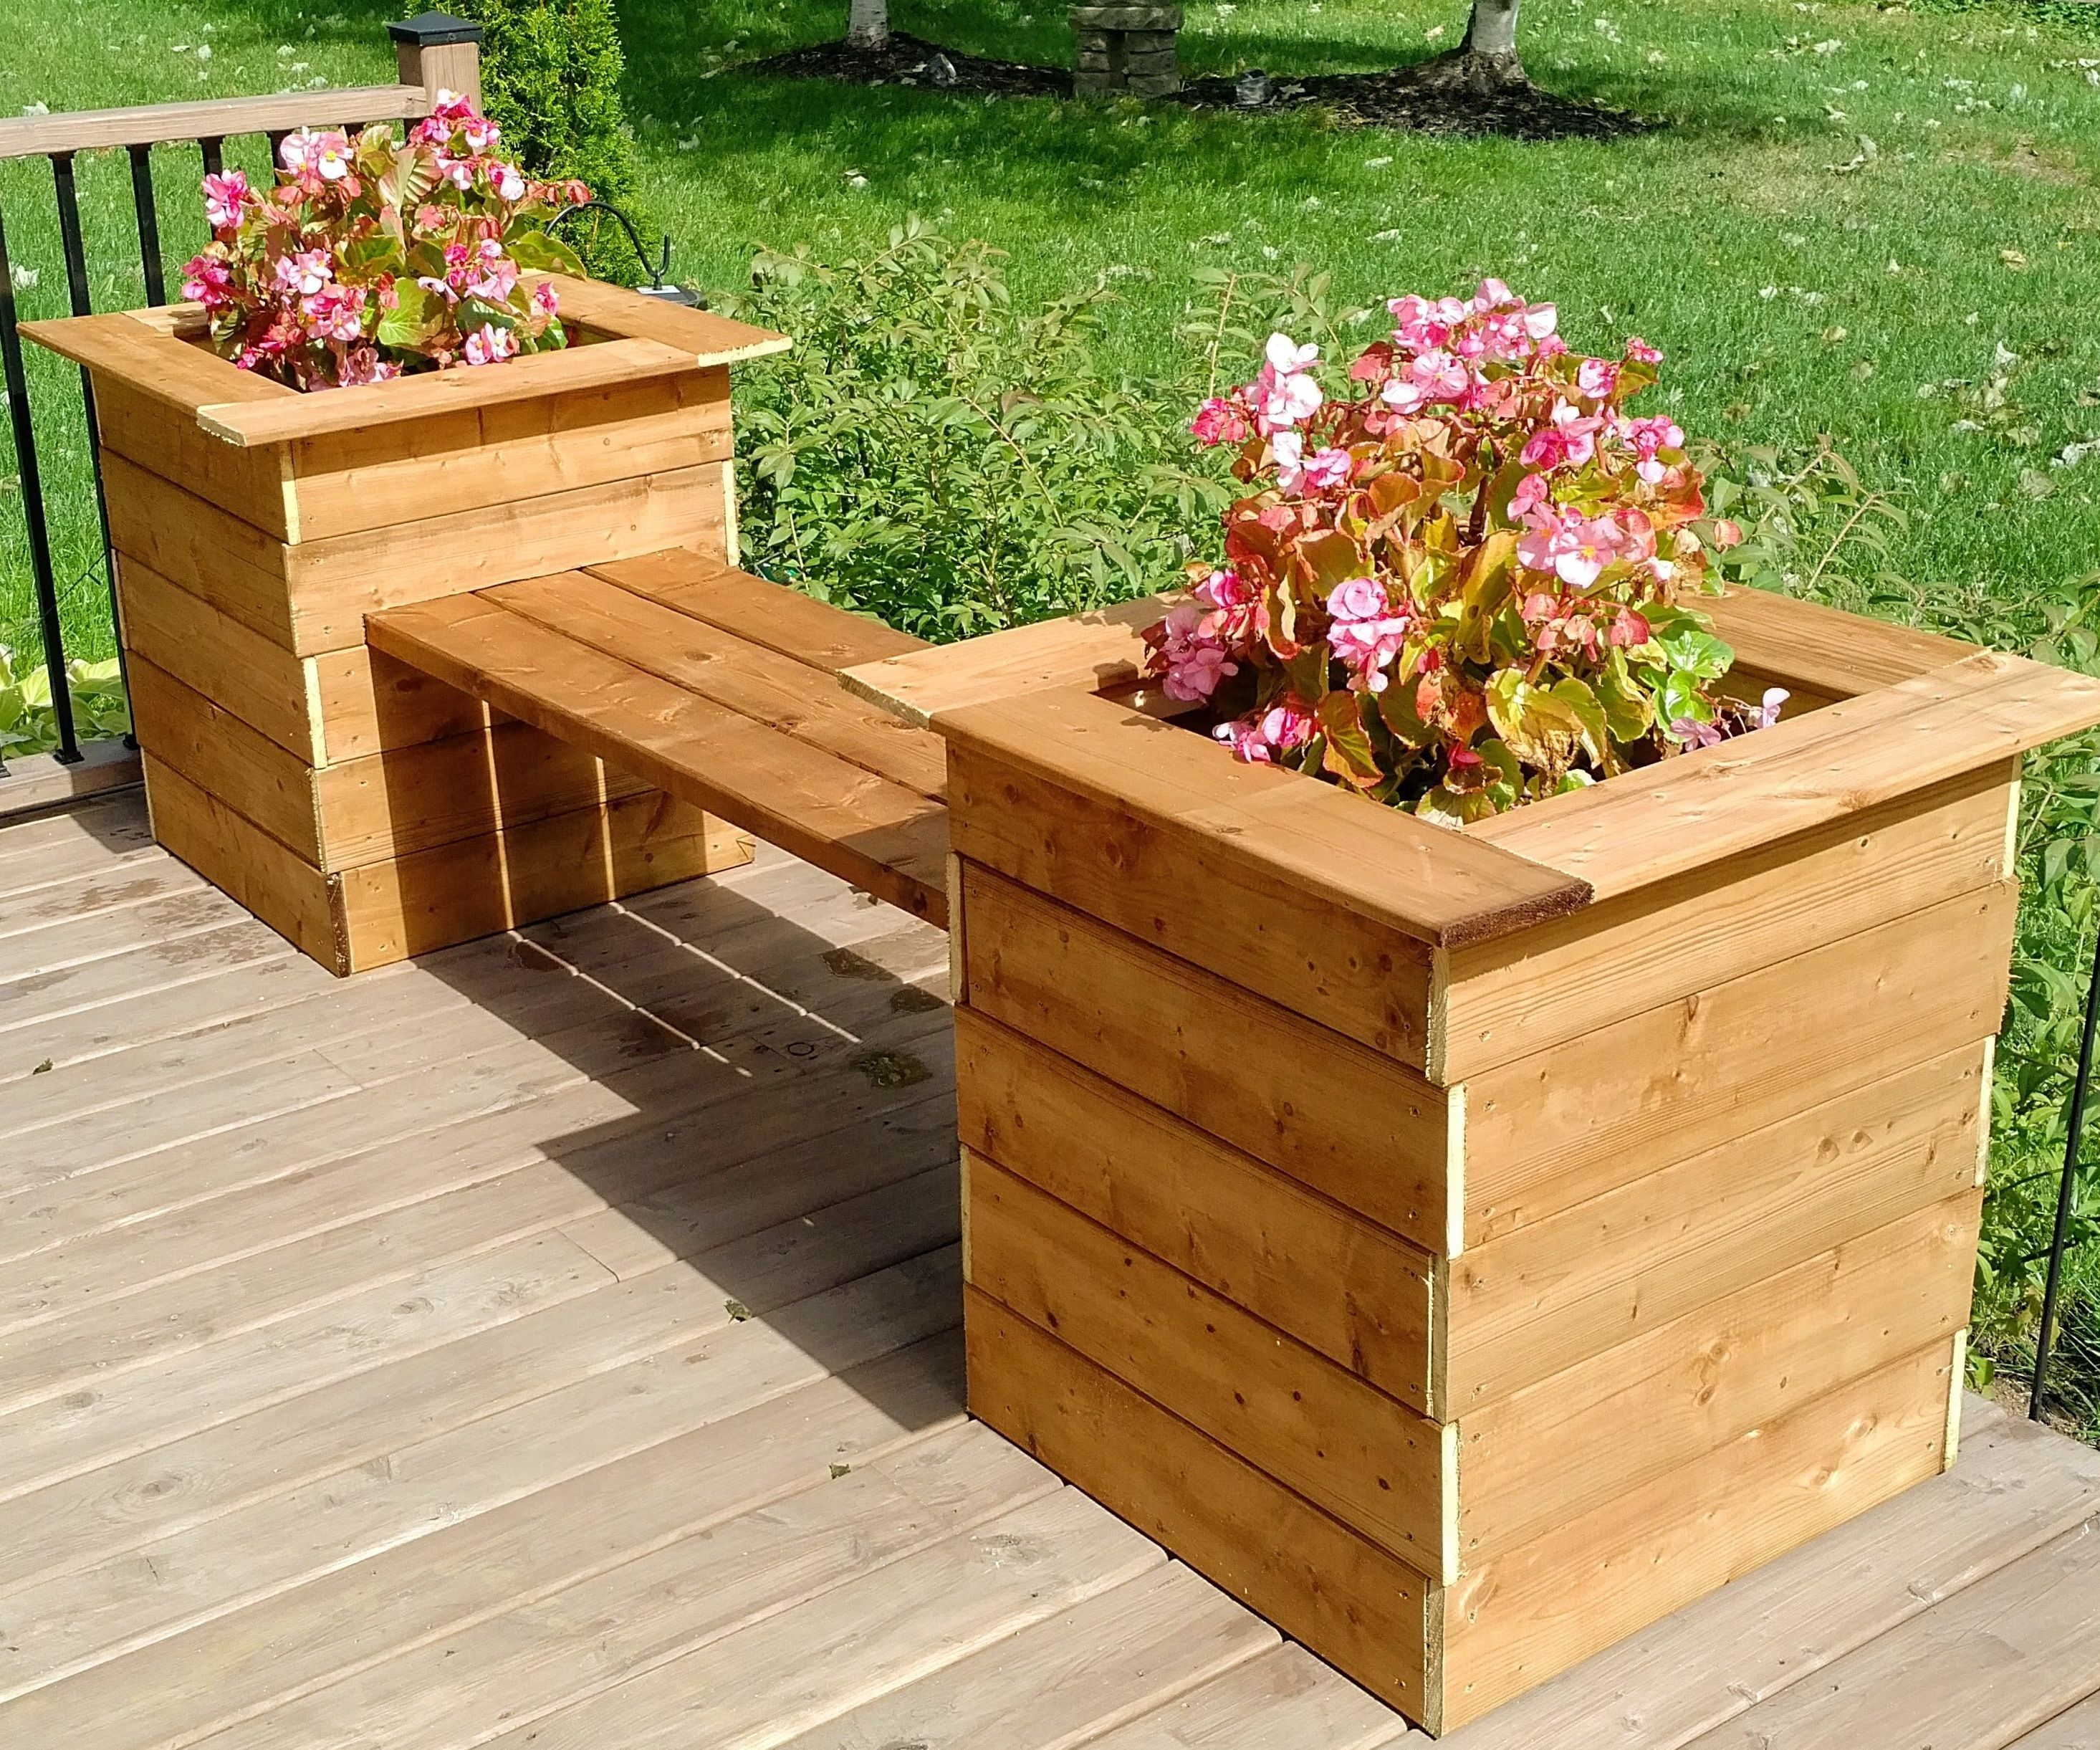 Simple Planter Bench 15 Steps With Pictures Instructables